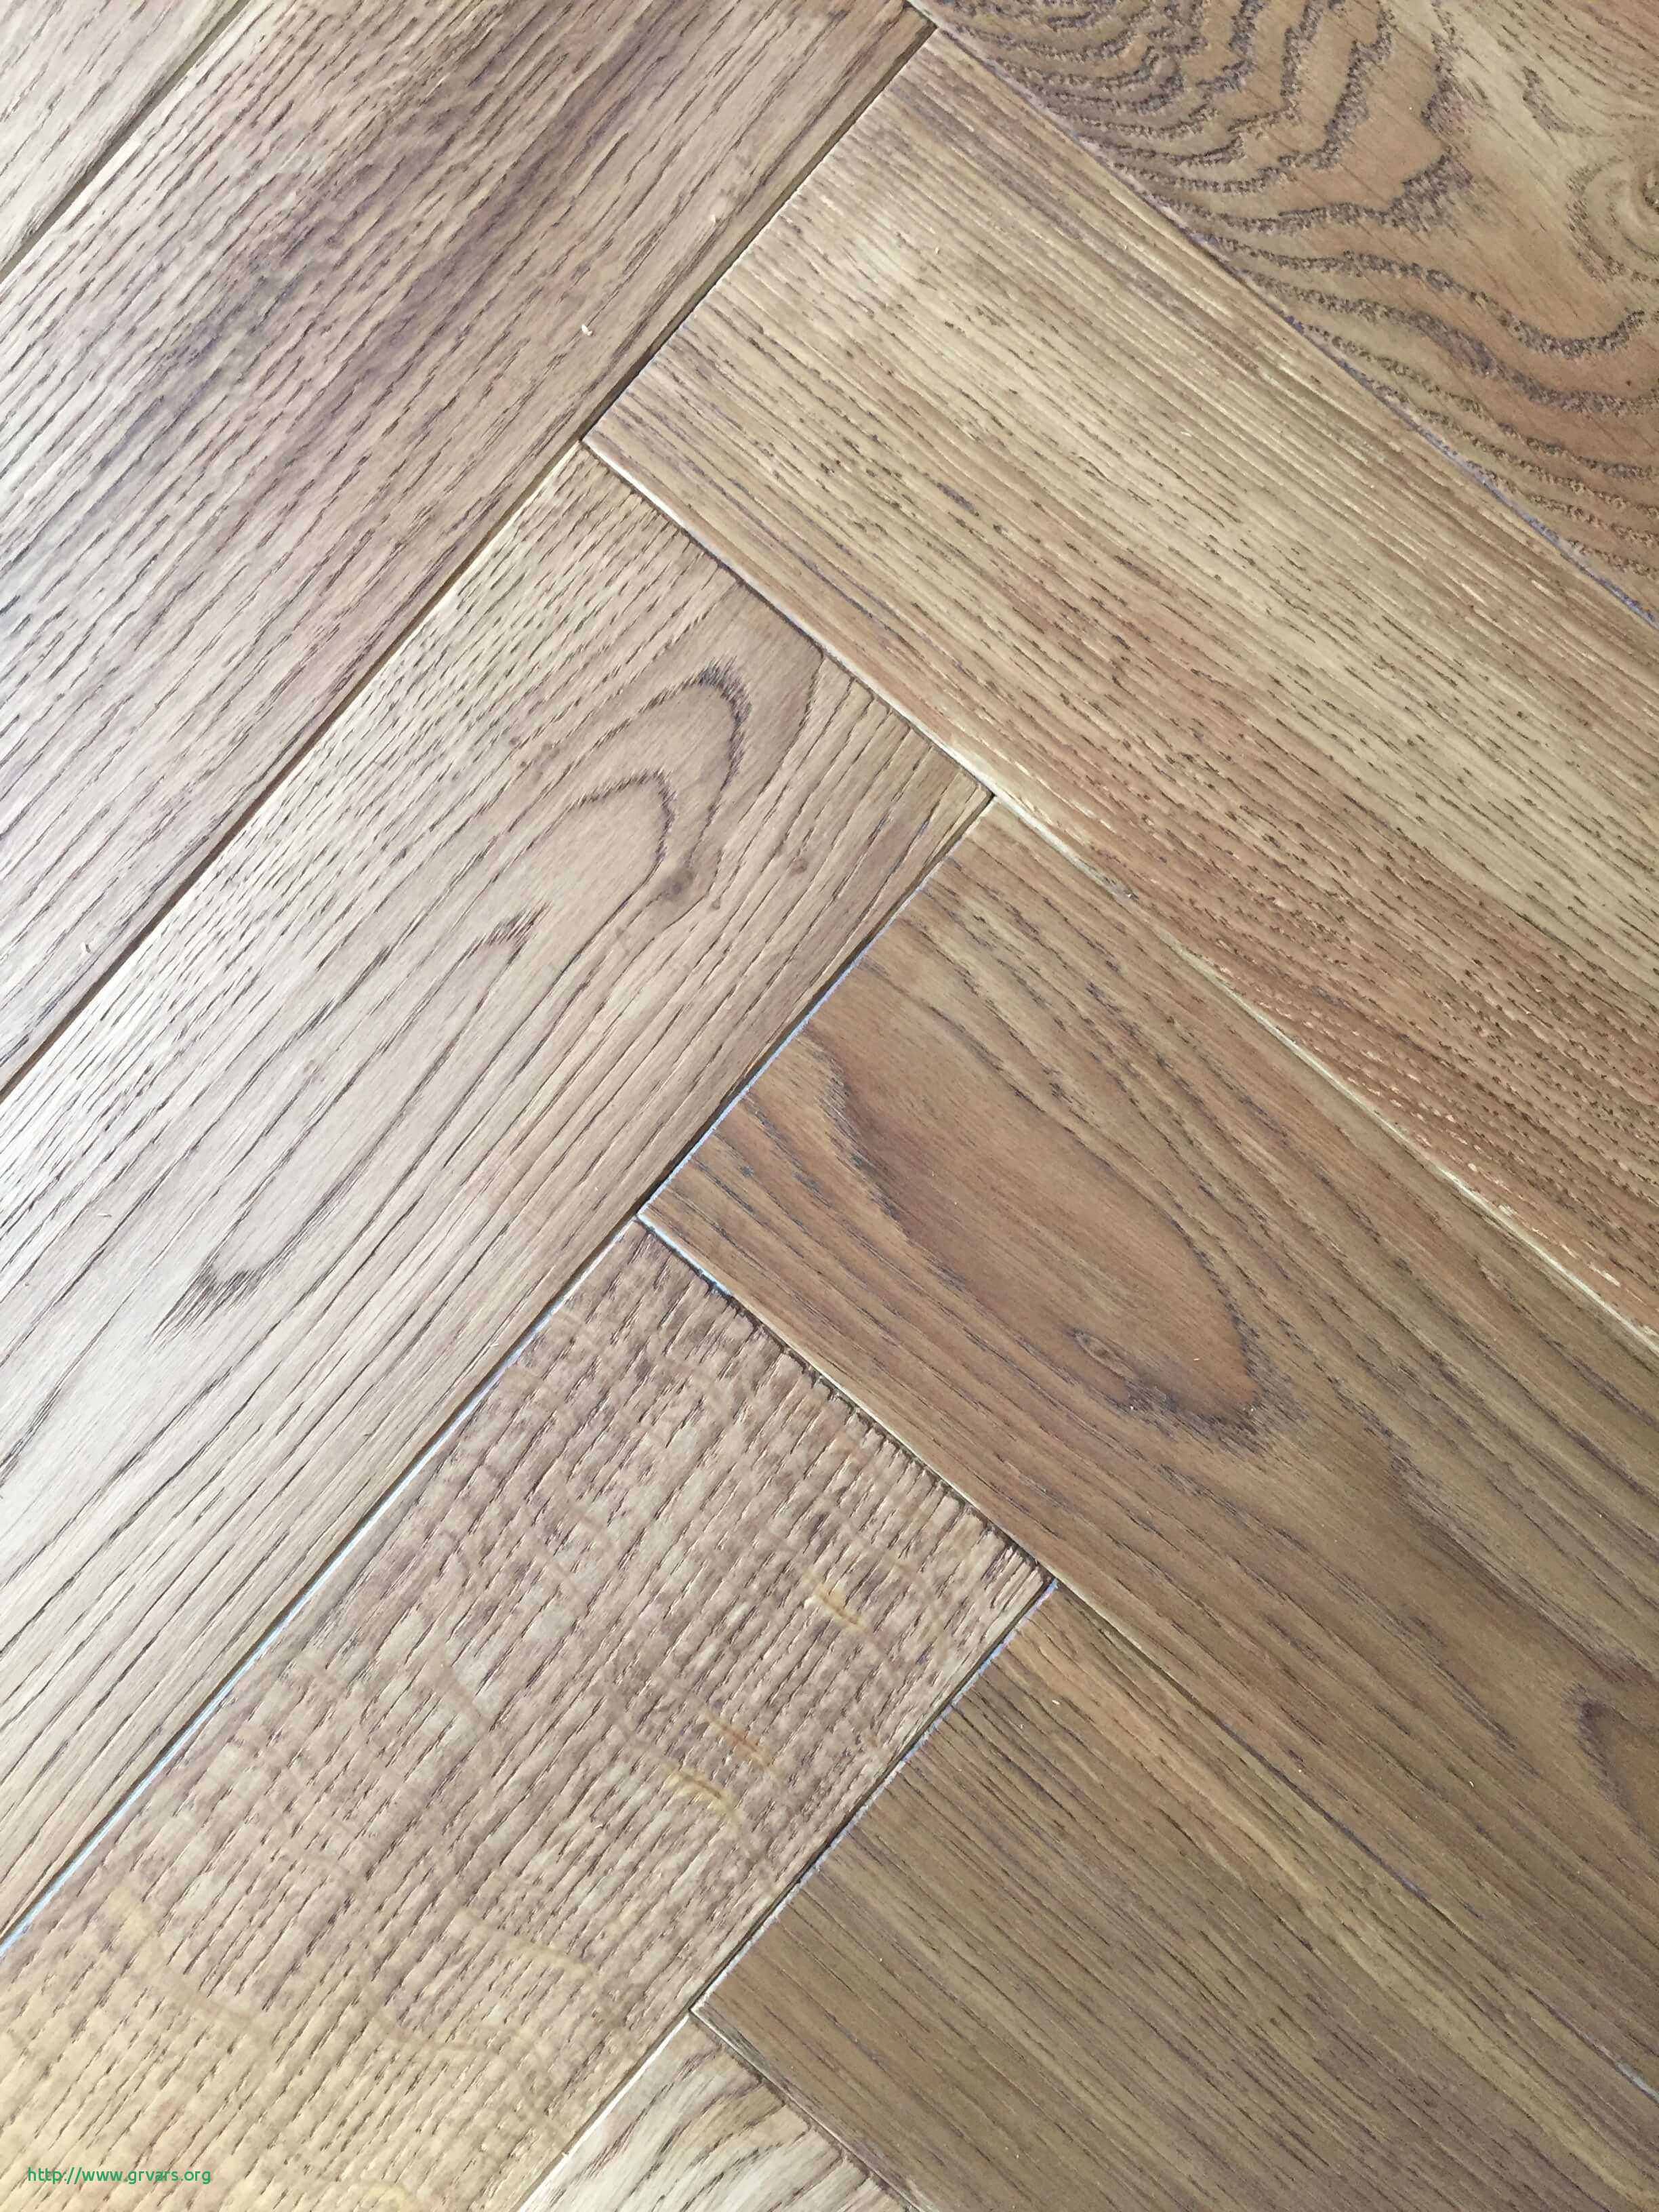 laminate flooring versus engineered hardwood of 21 meilleur de what is better laminate or vinyl flooring ideas blog throughout what is better laminate or vinyl flooring frais laminate flooring ideas